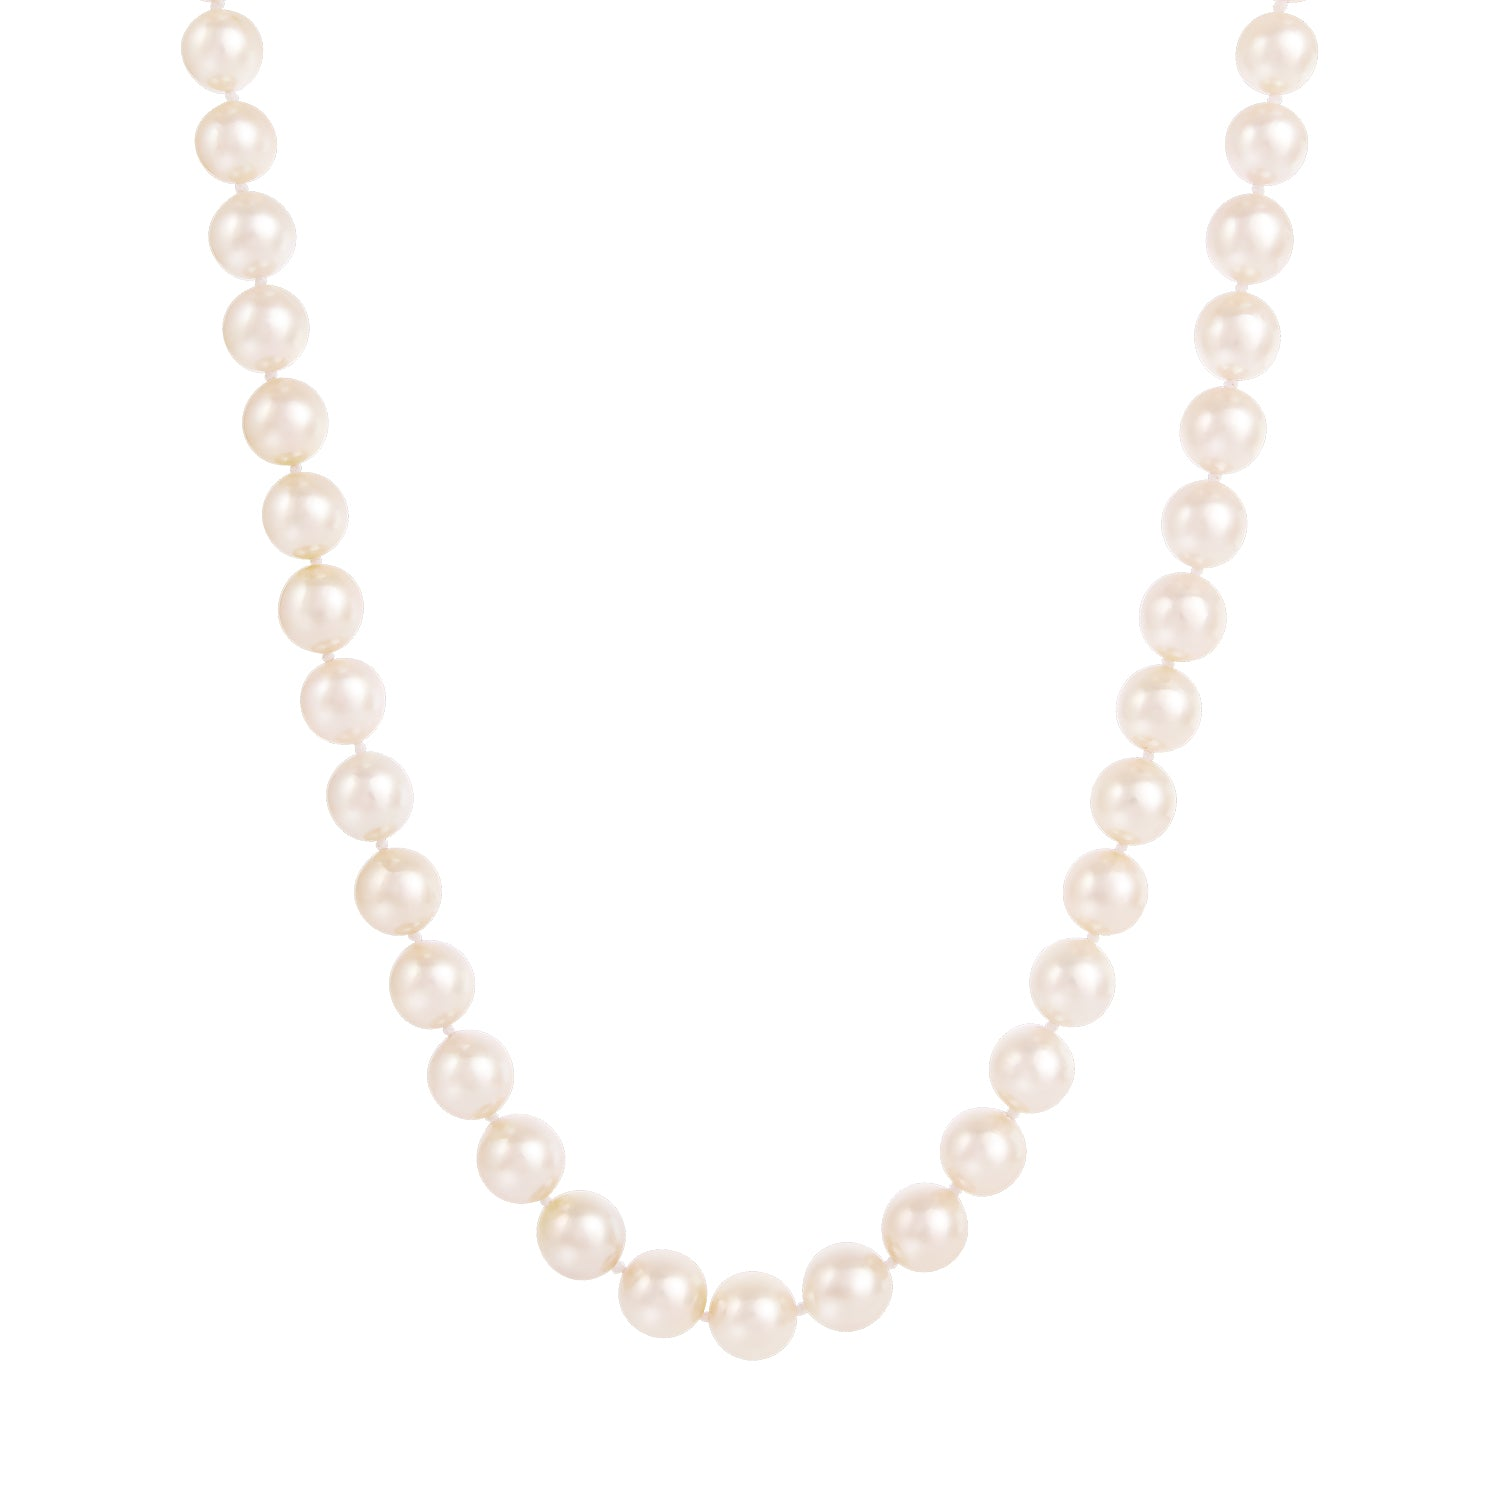 "14K 18"" AAA 7.5-8.5MM Japanese Akoya Pearl Necklace"